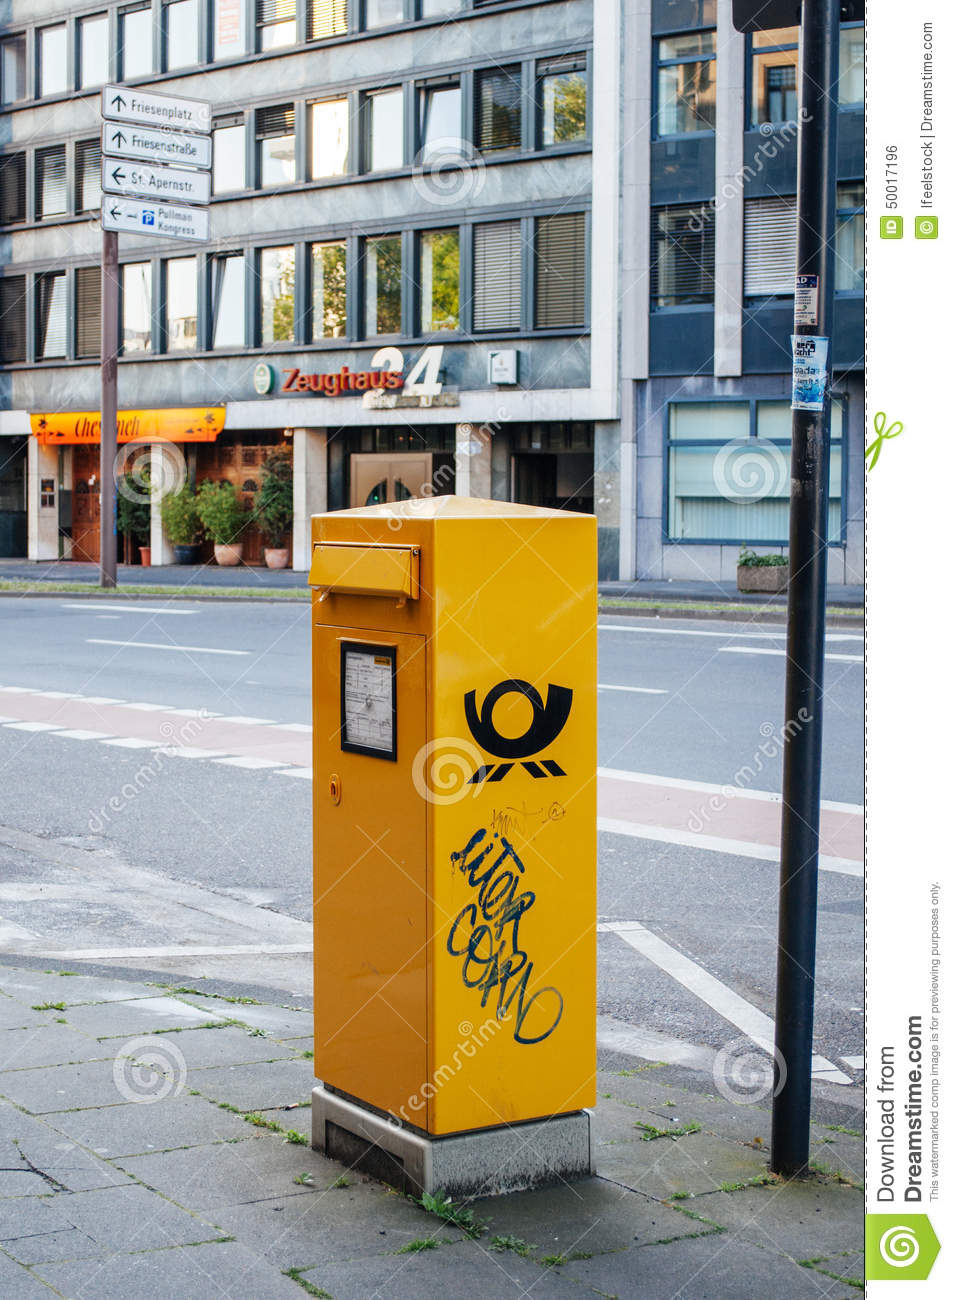 deutsche post dhl mailbox in the city editorial photo image 50017196